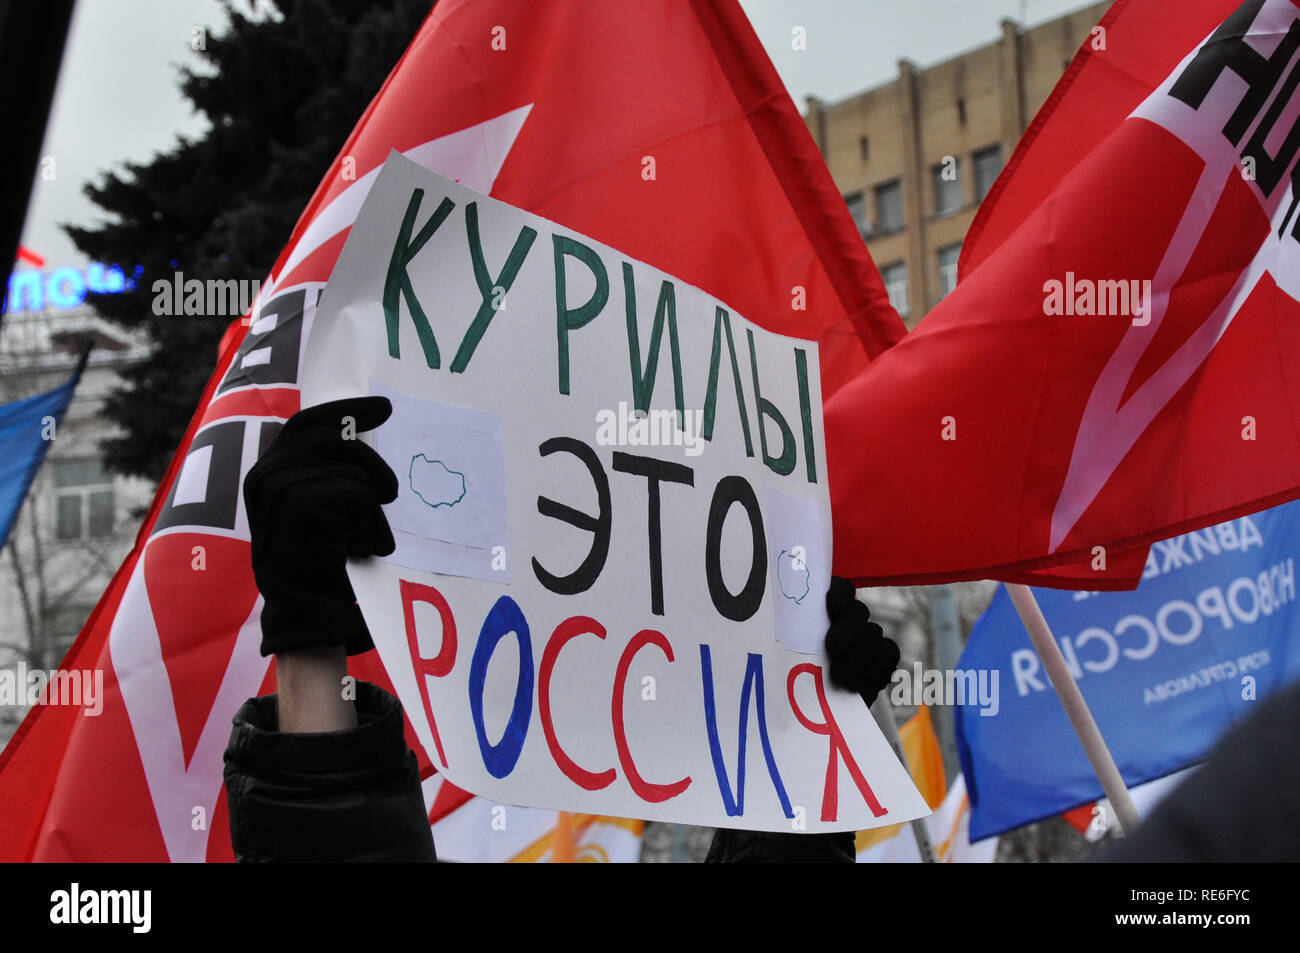 Moscow, Russia. 20th Jan, 2019. An activist is holding a sign 'the Kurils are [a part of] Russia'. Hundreds from both left and right protest possible handover of contested Kuril islands (Northern territories) to Japan at a rally in central Moscow. Credit: Aleks Lokhmutov/Alamy Live News. - Stock Image